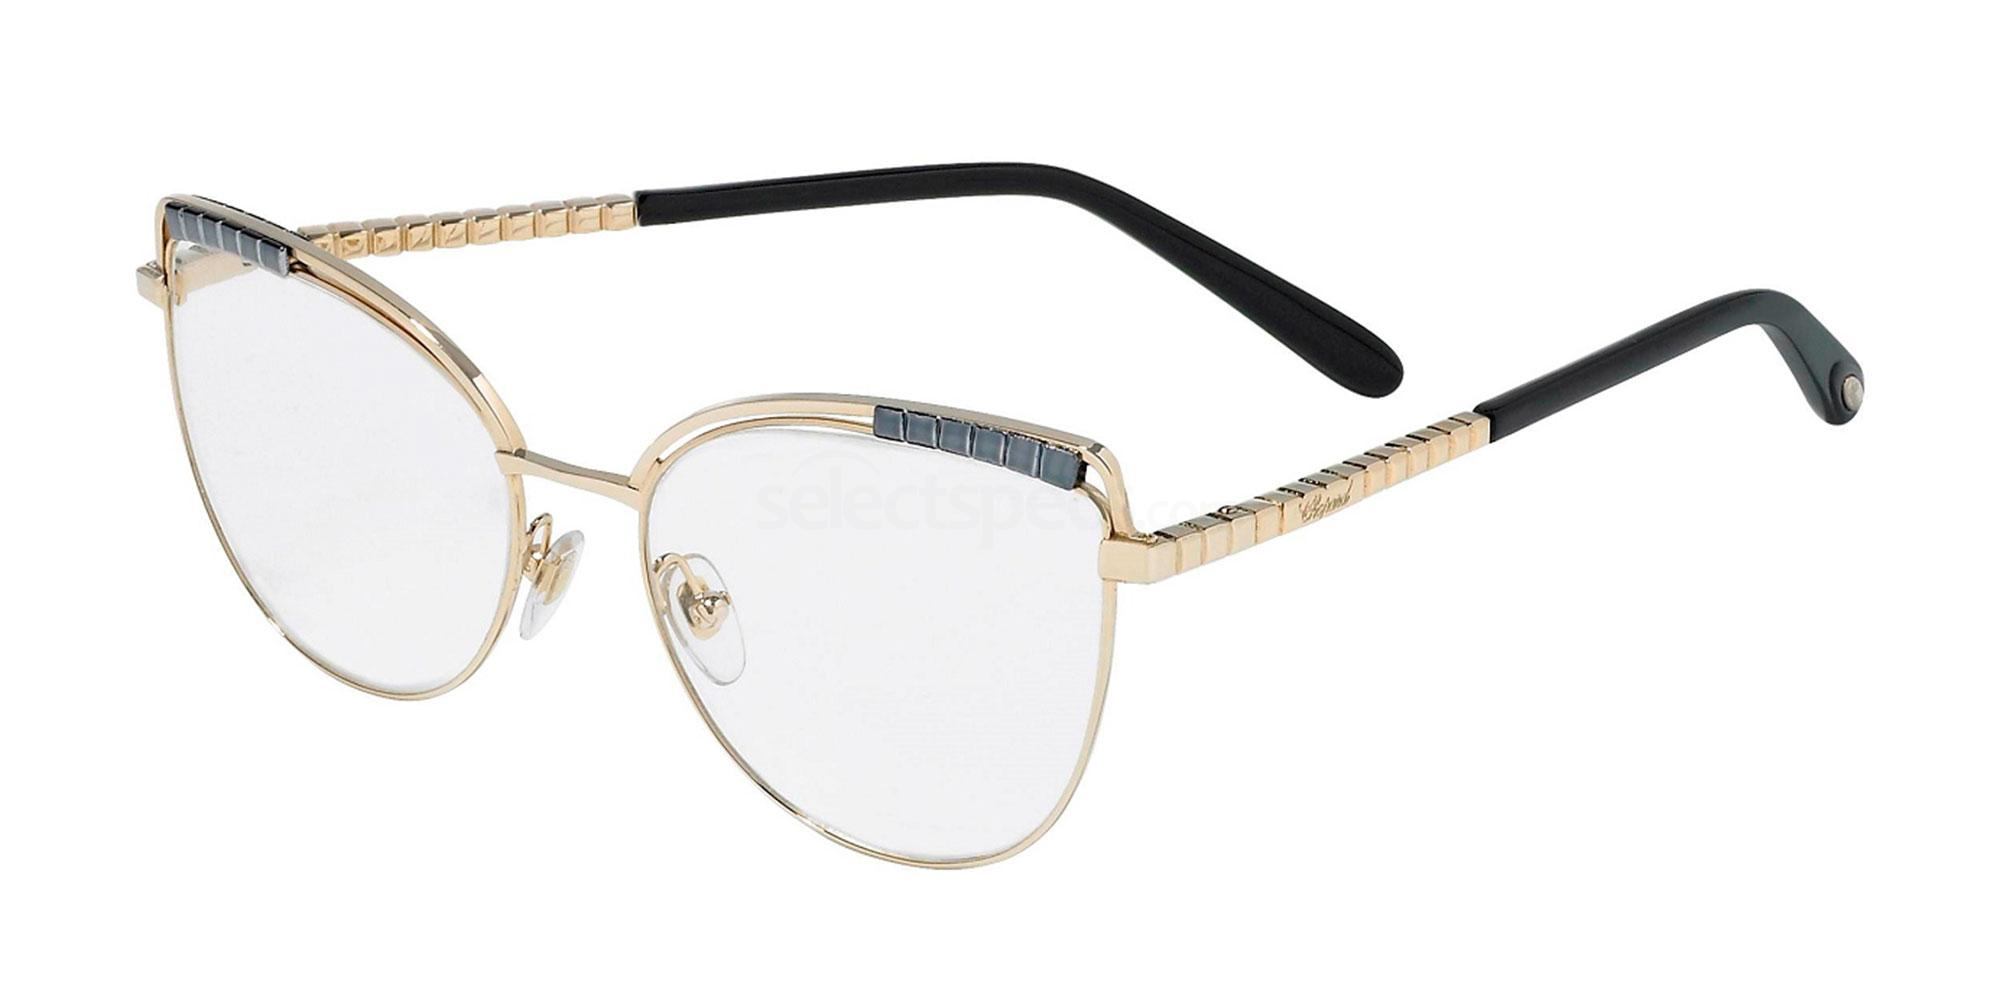 0300 VCHC70 Glasses, Chopard